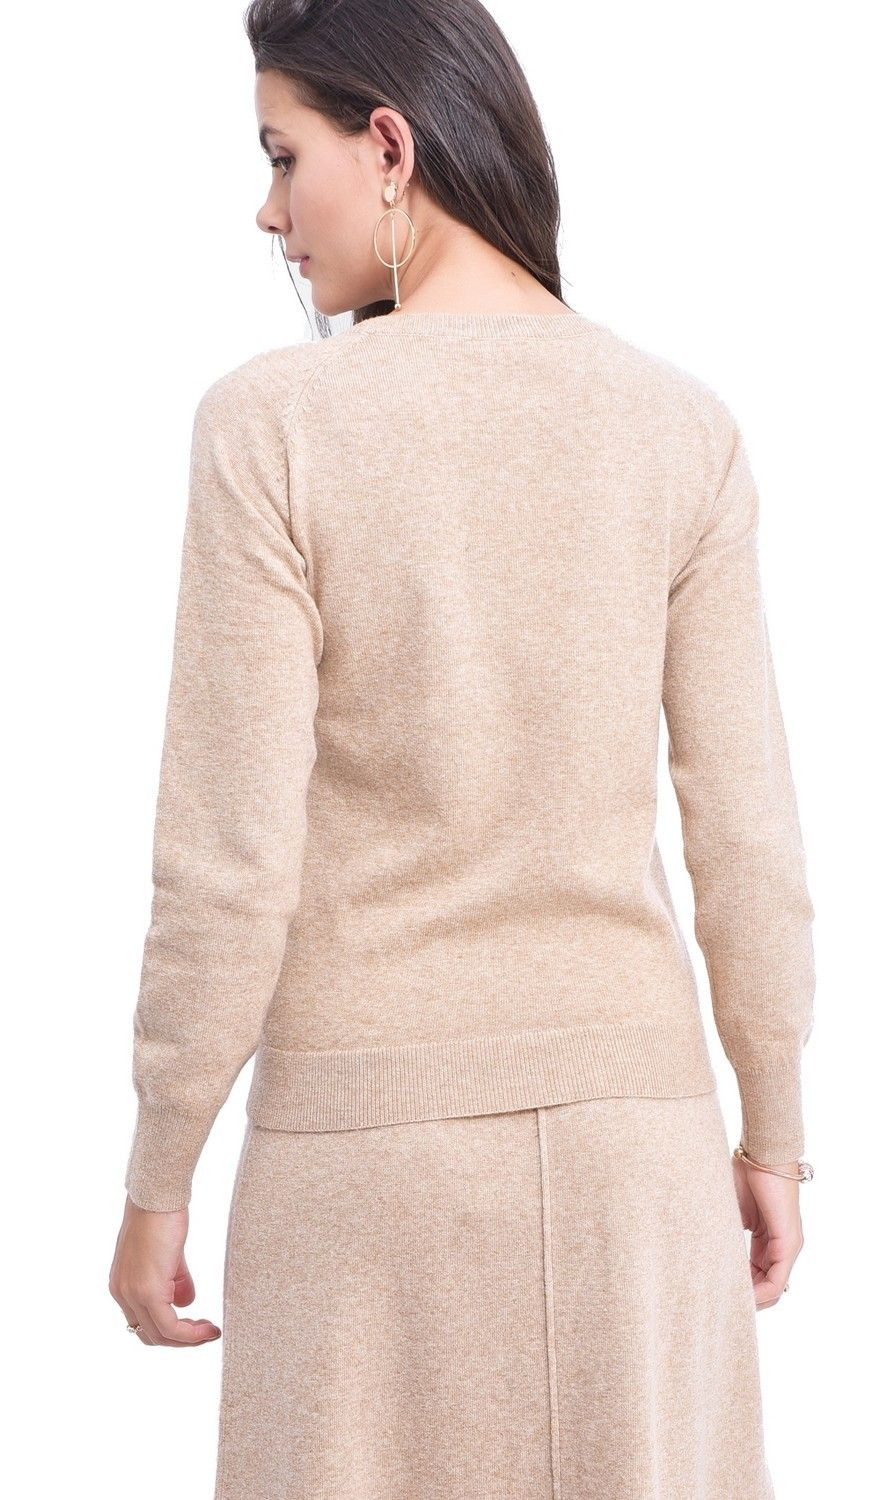 Assuili Round Neck Ribbed Sweater in Beige